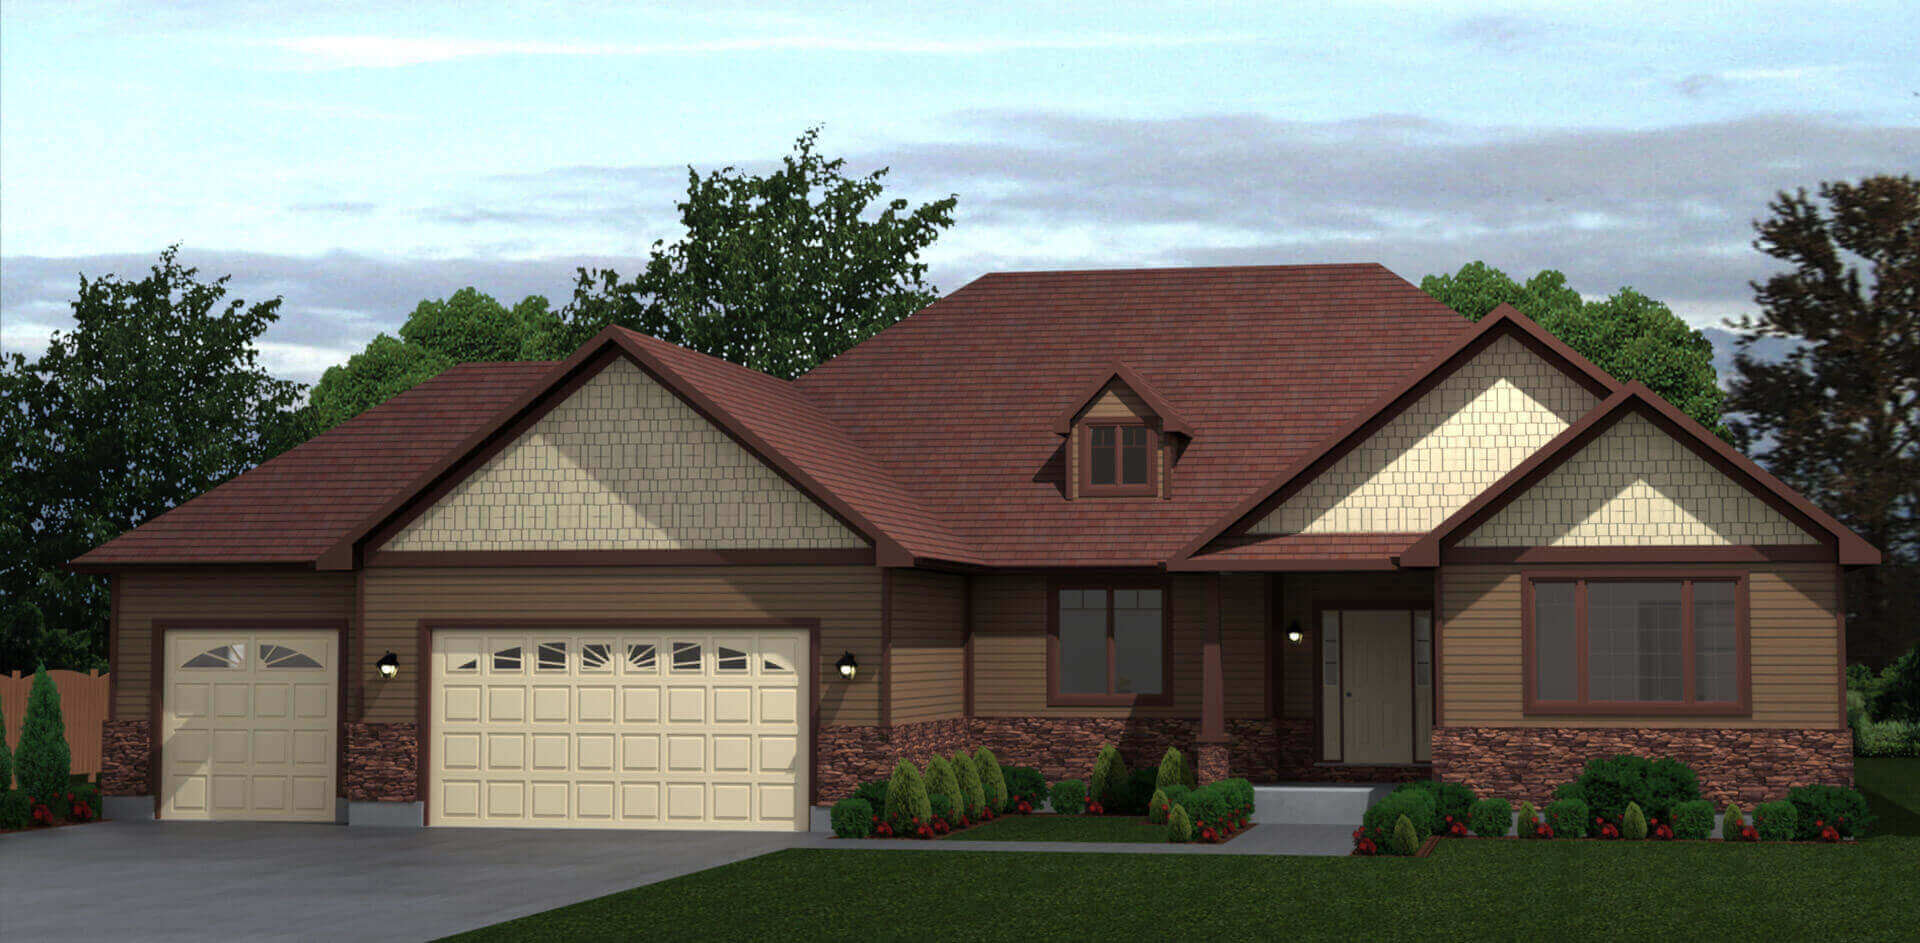 359 sq.ft. timber mart house 3 bed 2 bath exterior render